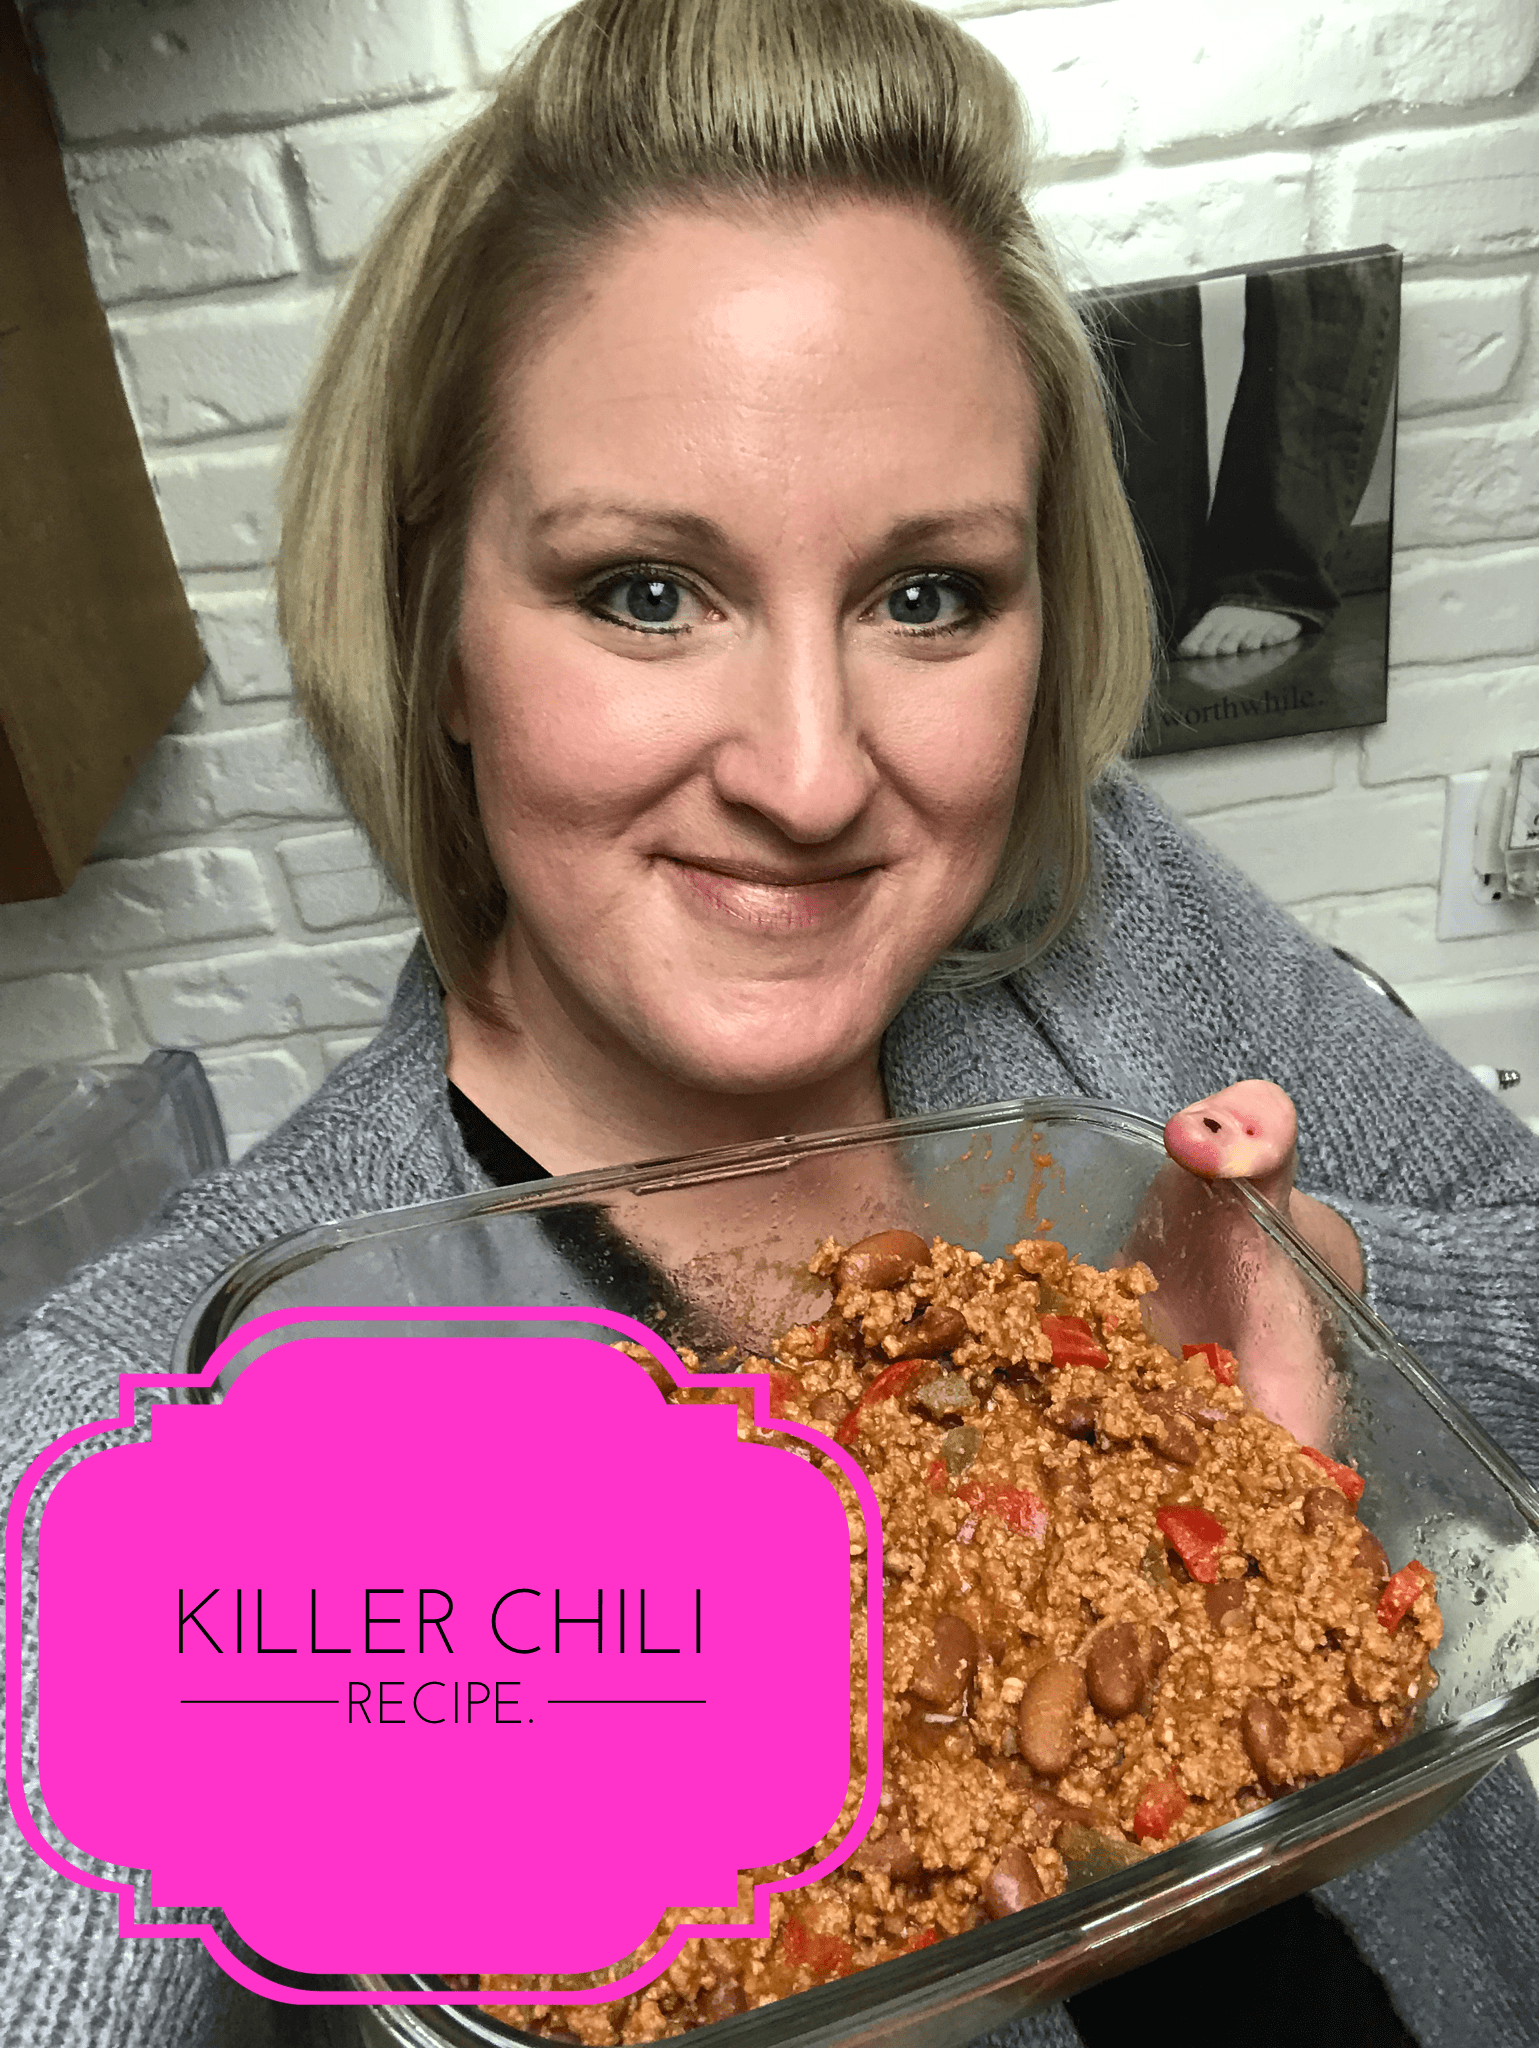 Killer Chili Recipe Fitness Coach For Moms Renee Schnuerle Fitness